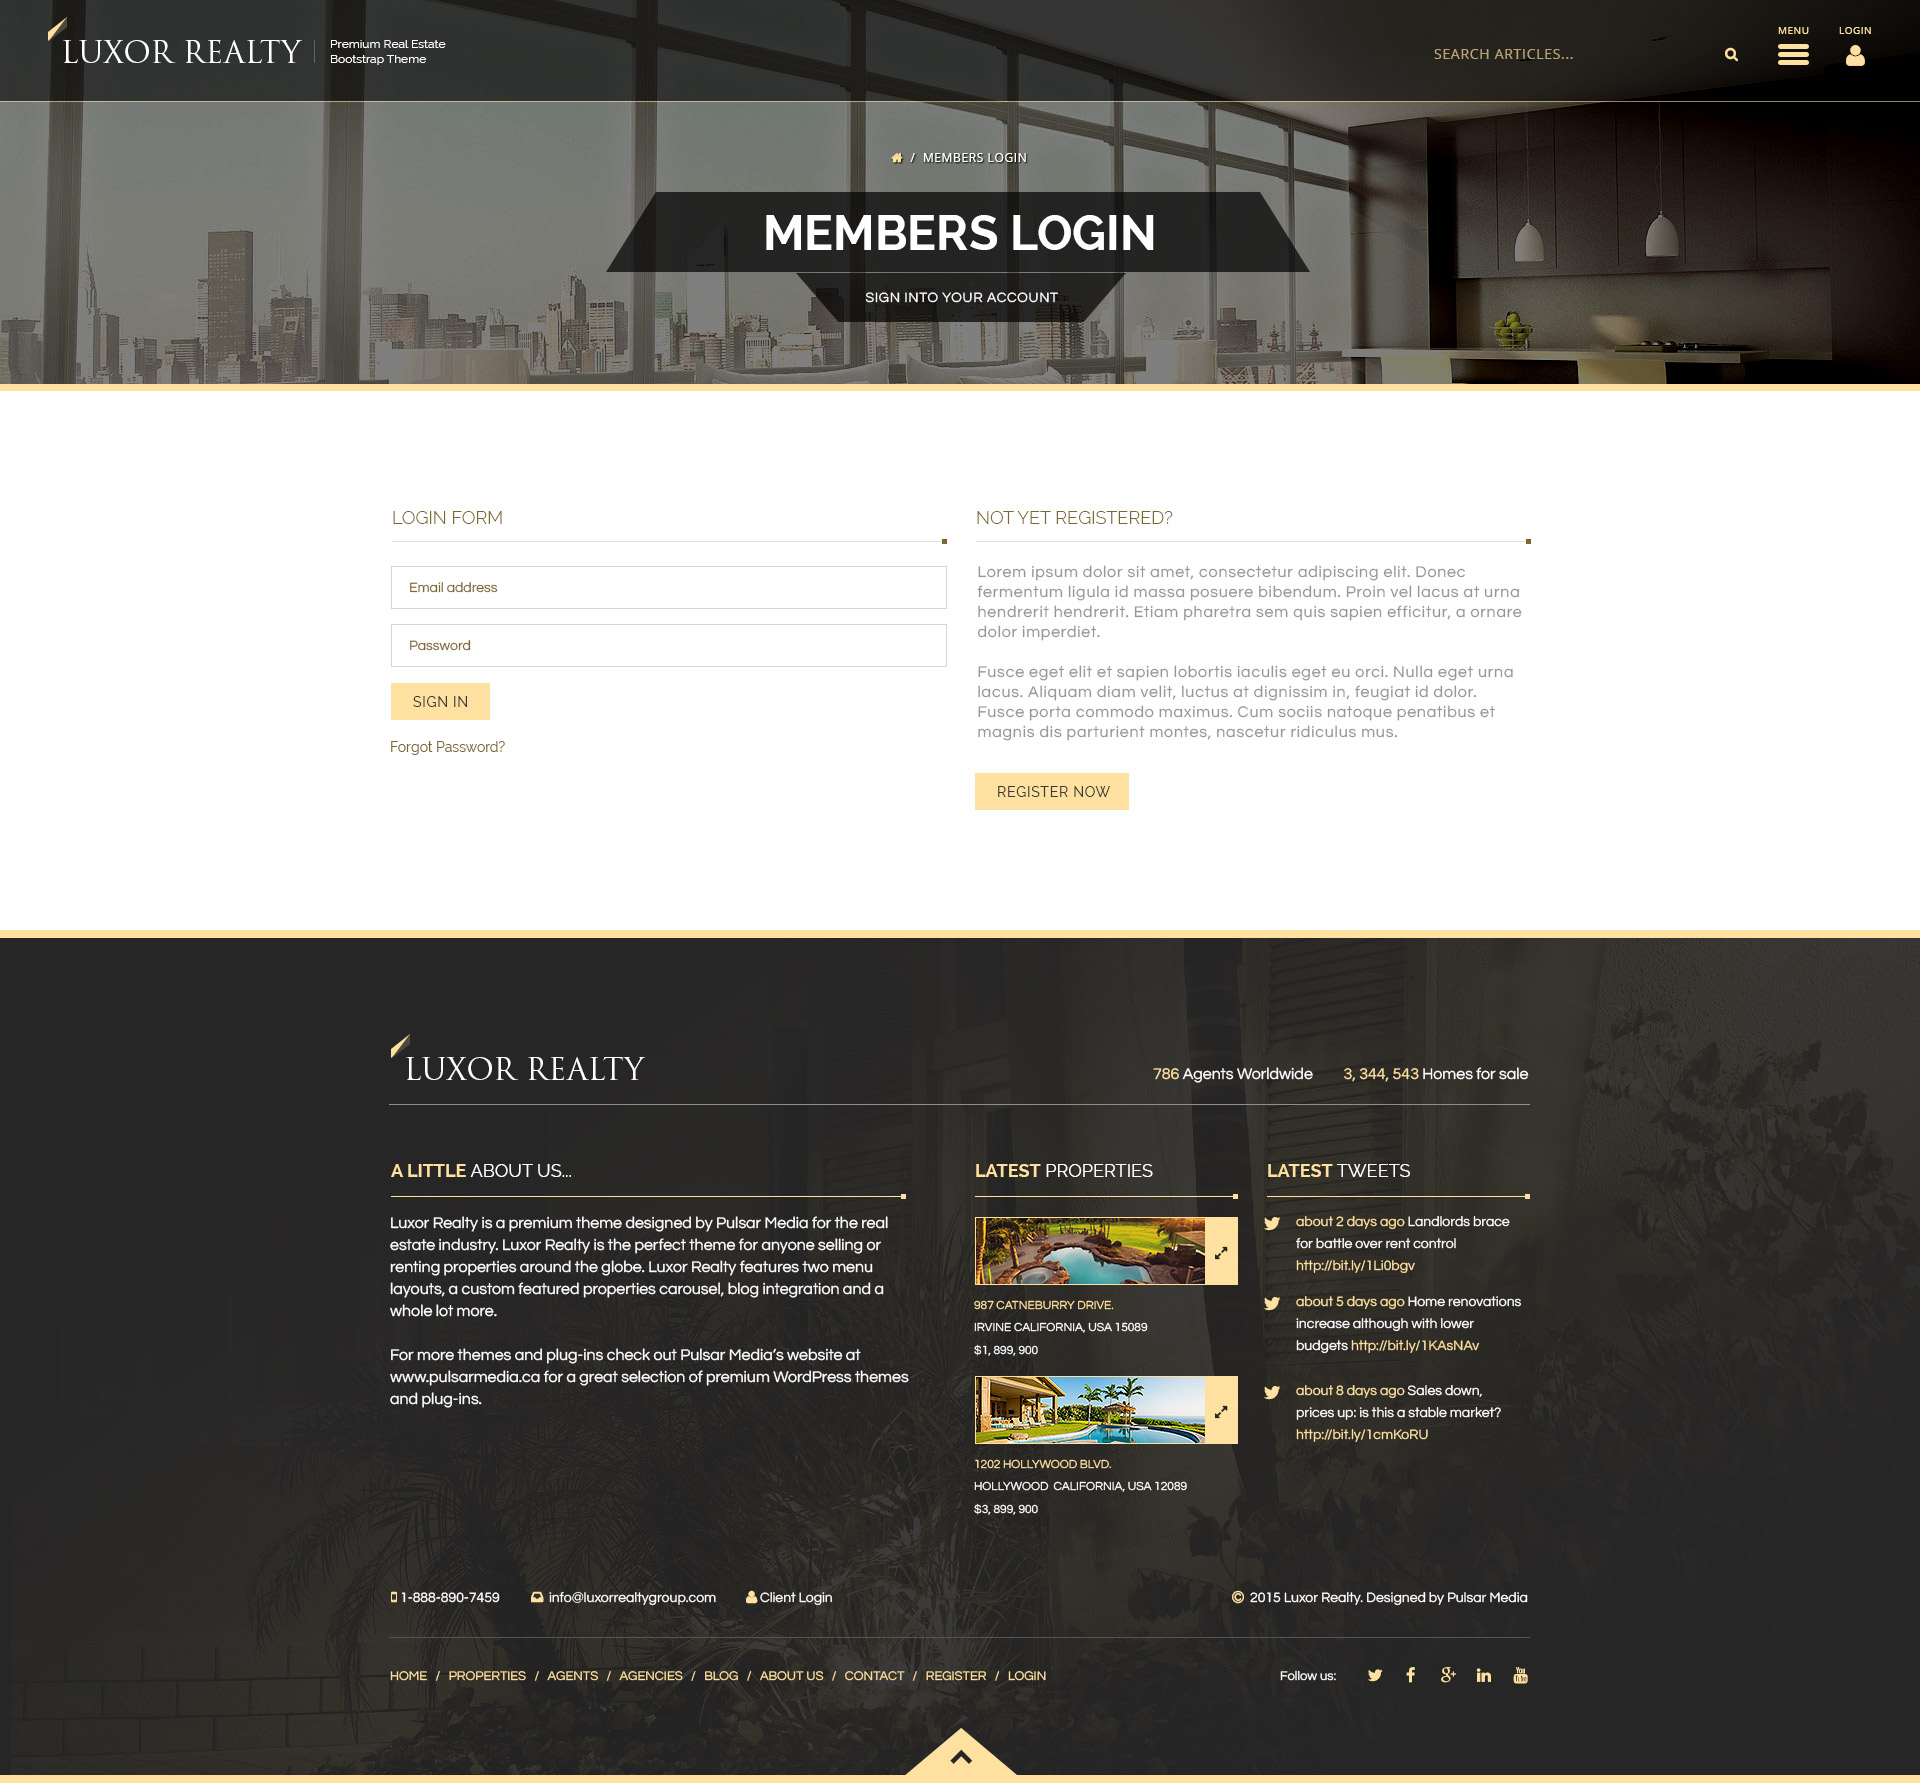 Luxor Realty - Responsive HTML5 Real Estate Template by Micro_Themes